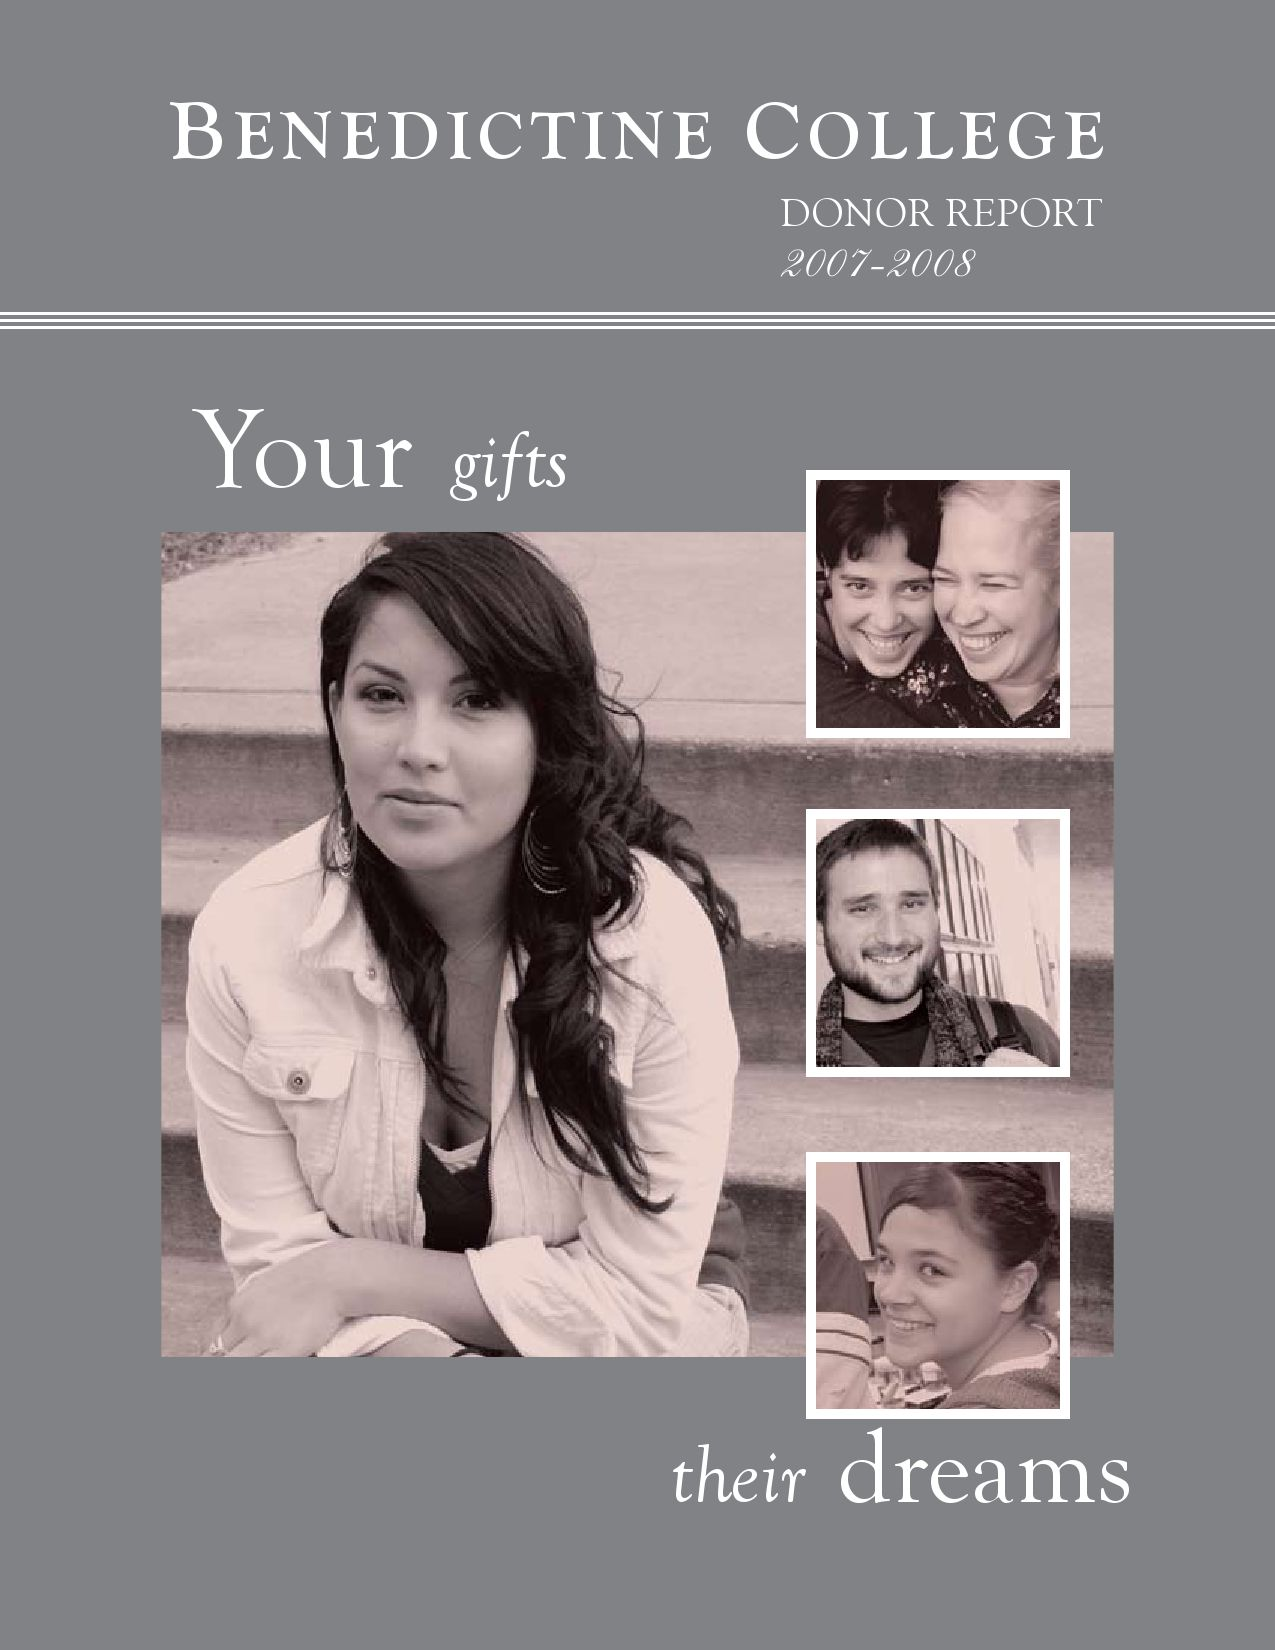 honor roll of donors by holy family university issuu benedictine college donor report